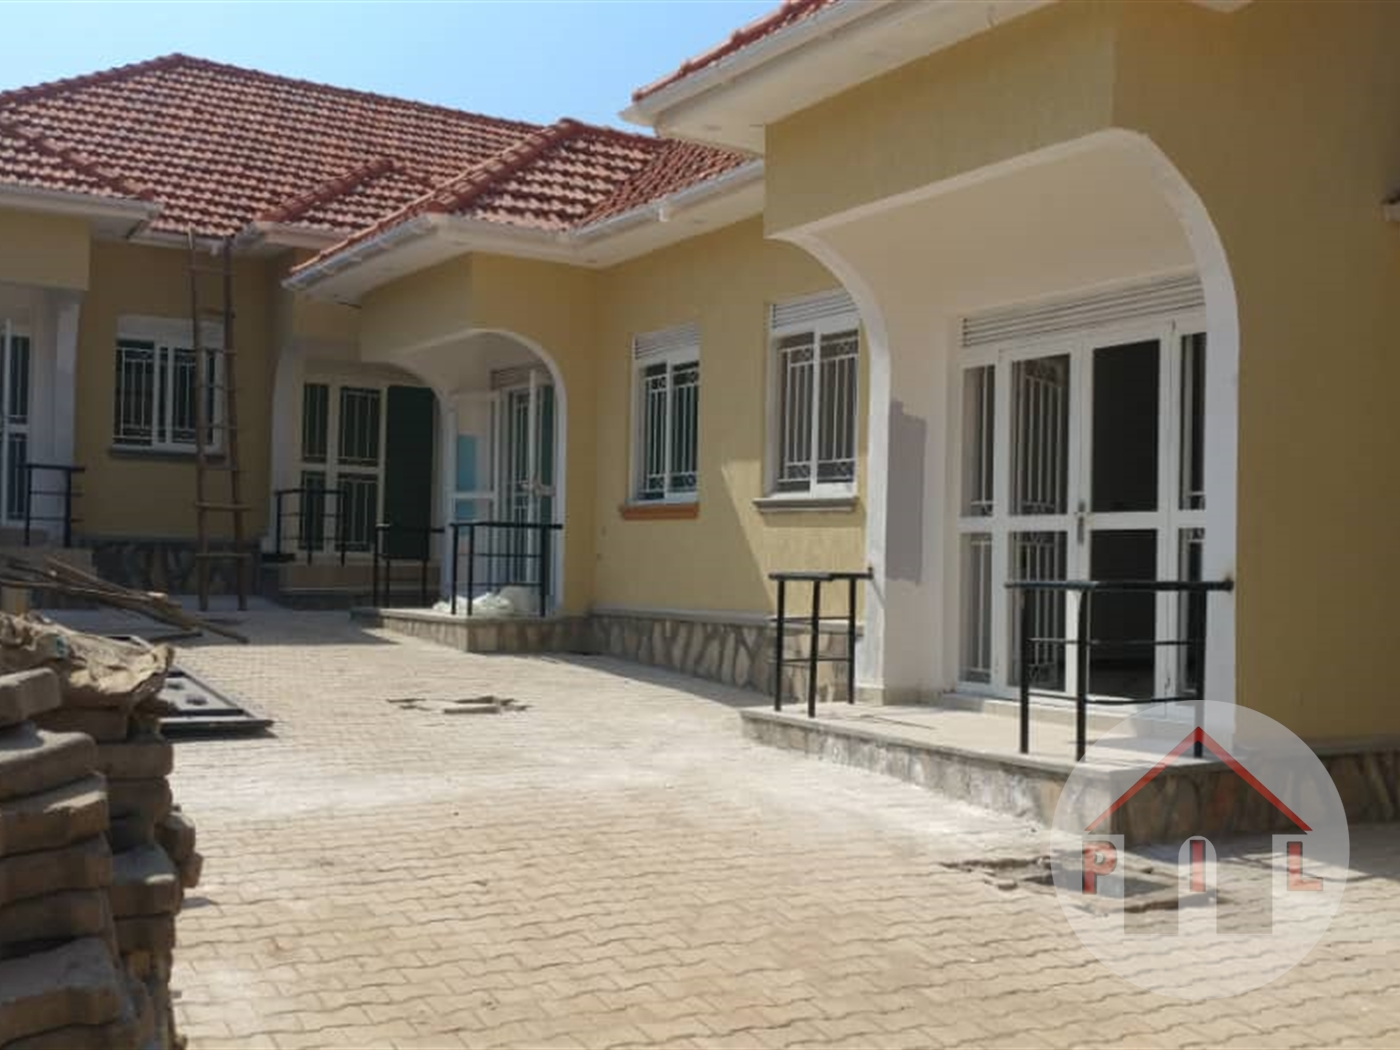 Rental units for sale in Munyonyo Kampala